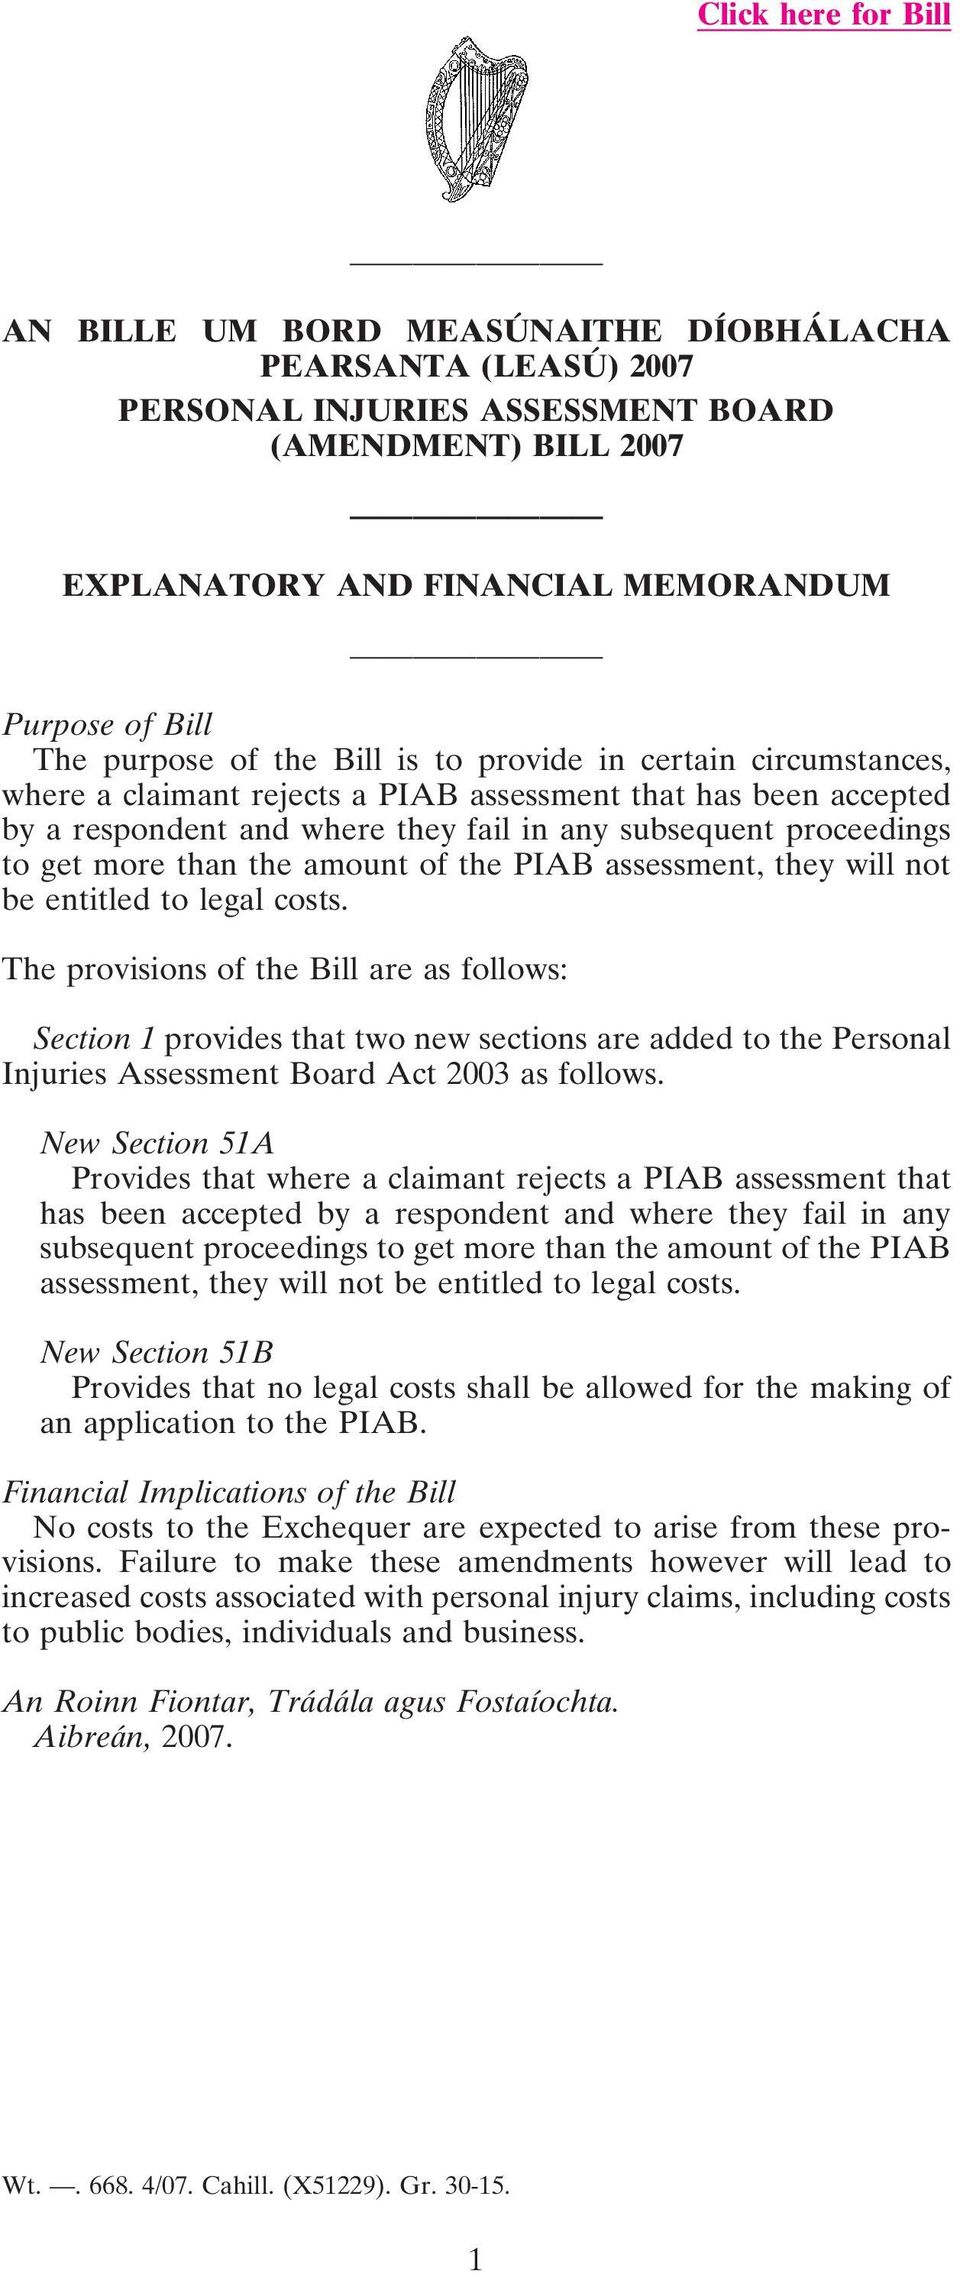 more than the amount of the PIAB assessment, they will not be entitled to legal costs.